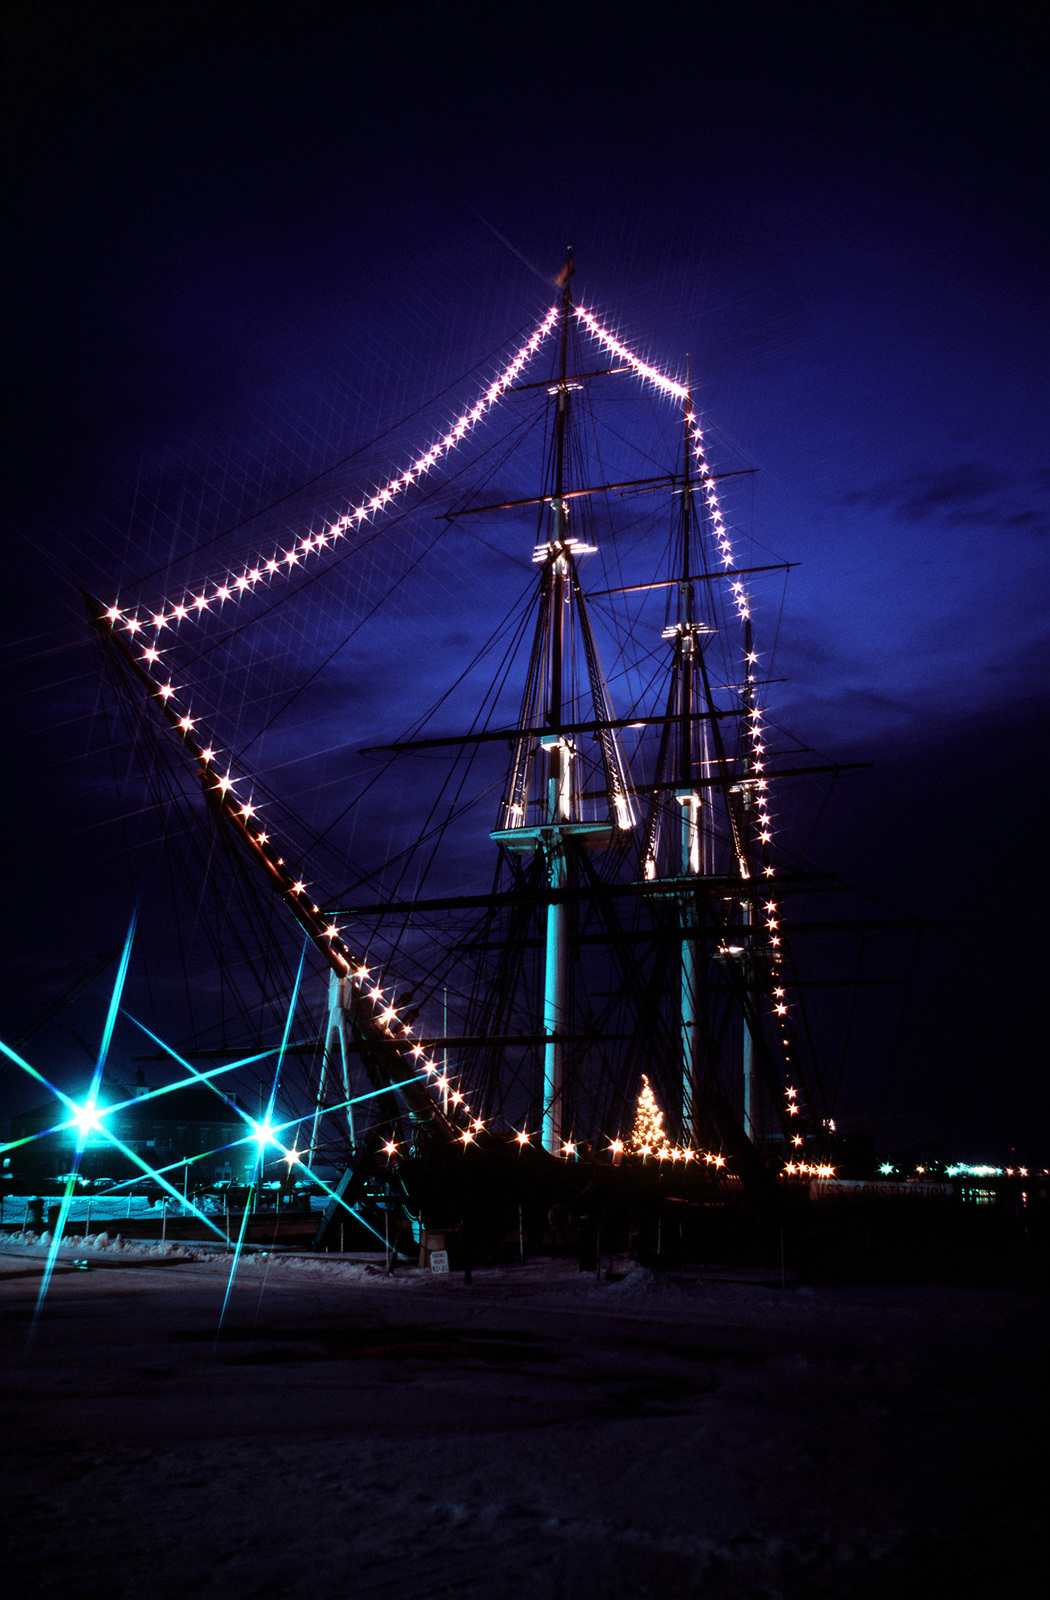 A view of the sail frigate USS CONSTITUTION (IX-21) decorated with lights and a Christmas tree from the holiday. A star lens was used to obtain the dramatic lighting effect